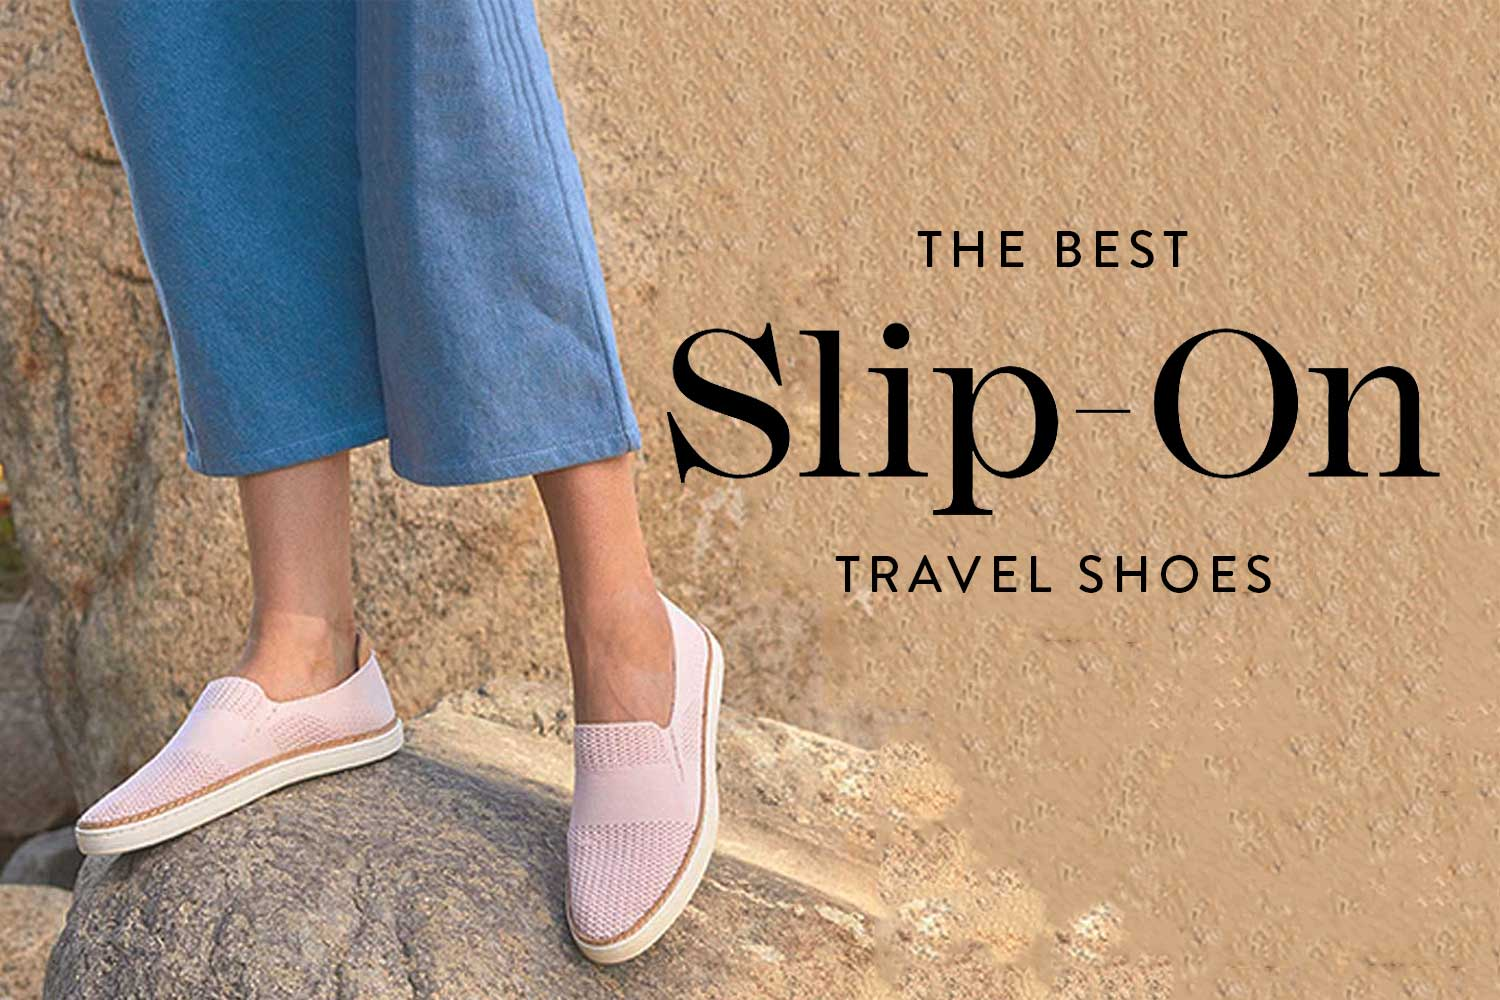 best shoes for travel 2019